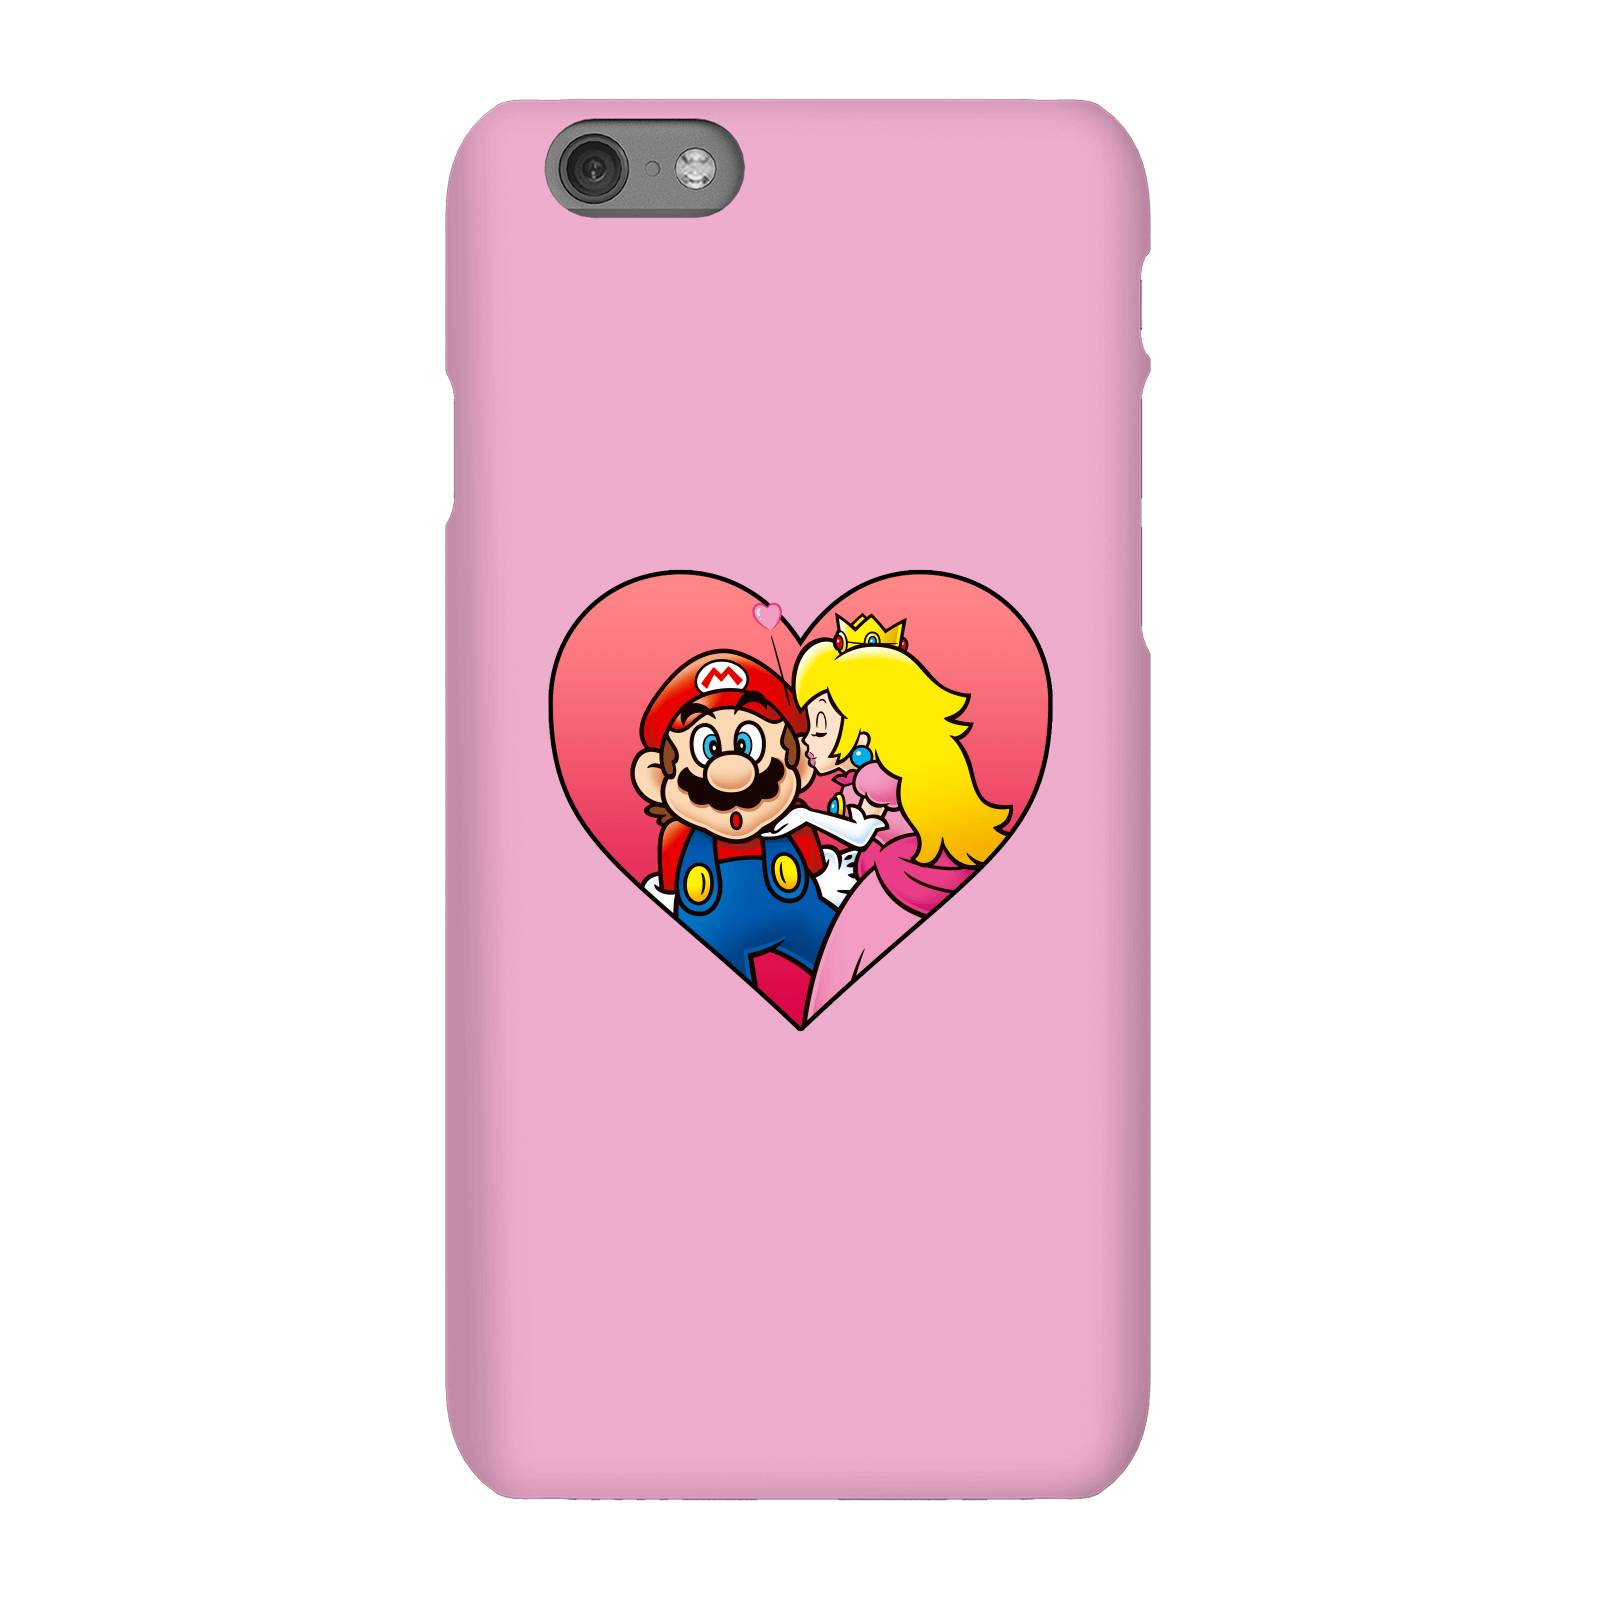 Nintendo Coque Smartphone Bisou Peach - iPhone & Android - iPhone 6S - Coque Simple Vernie